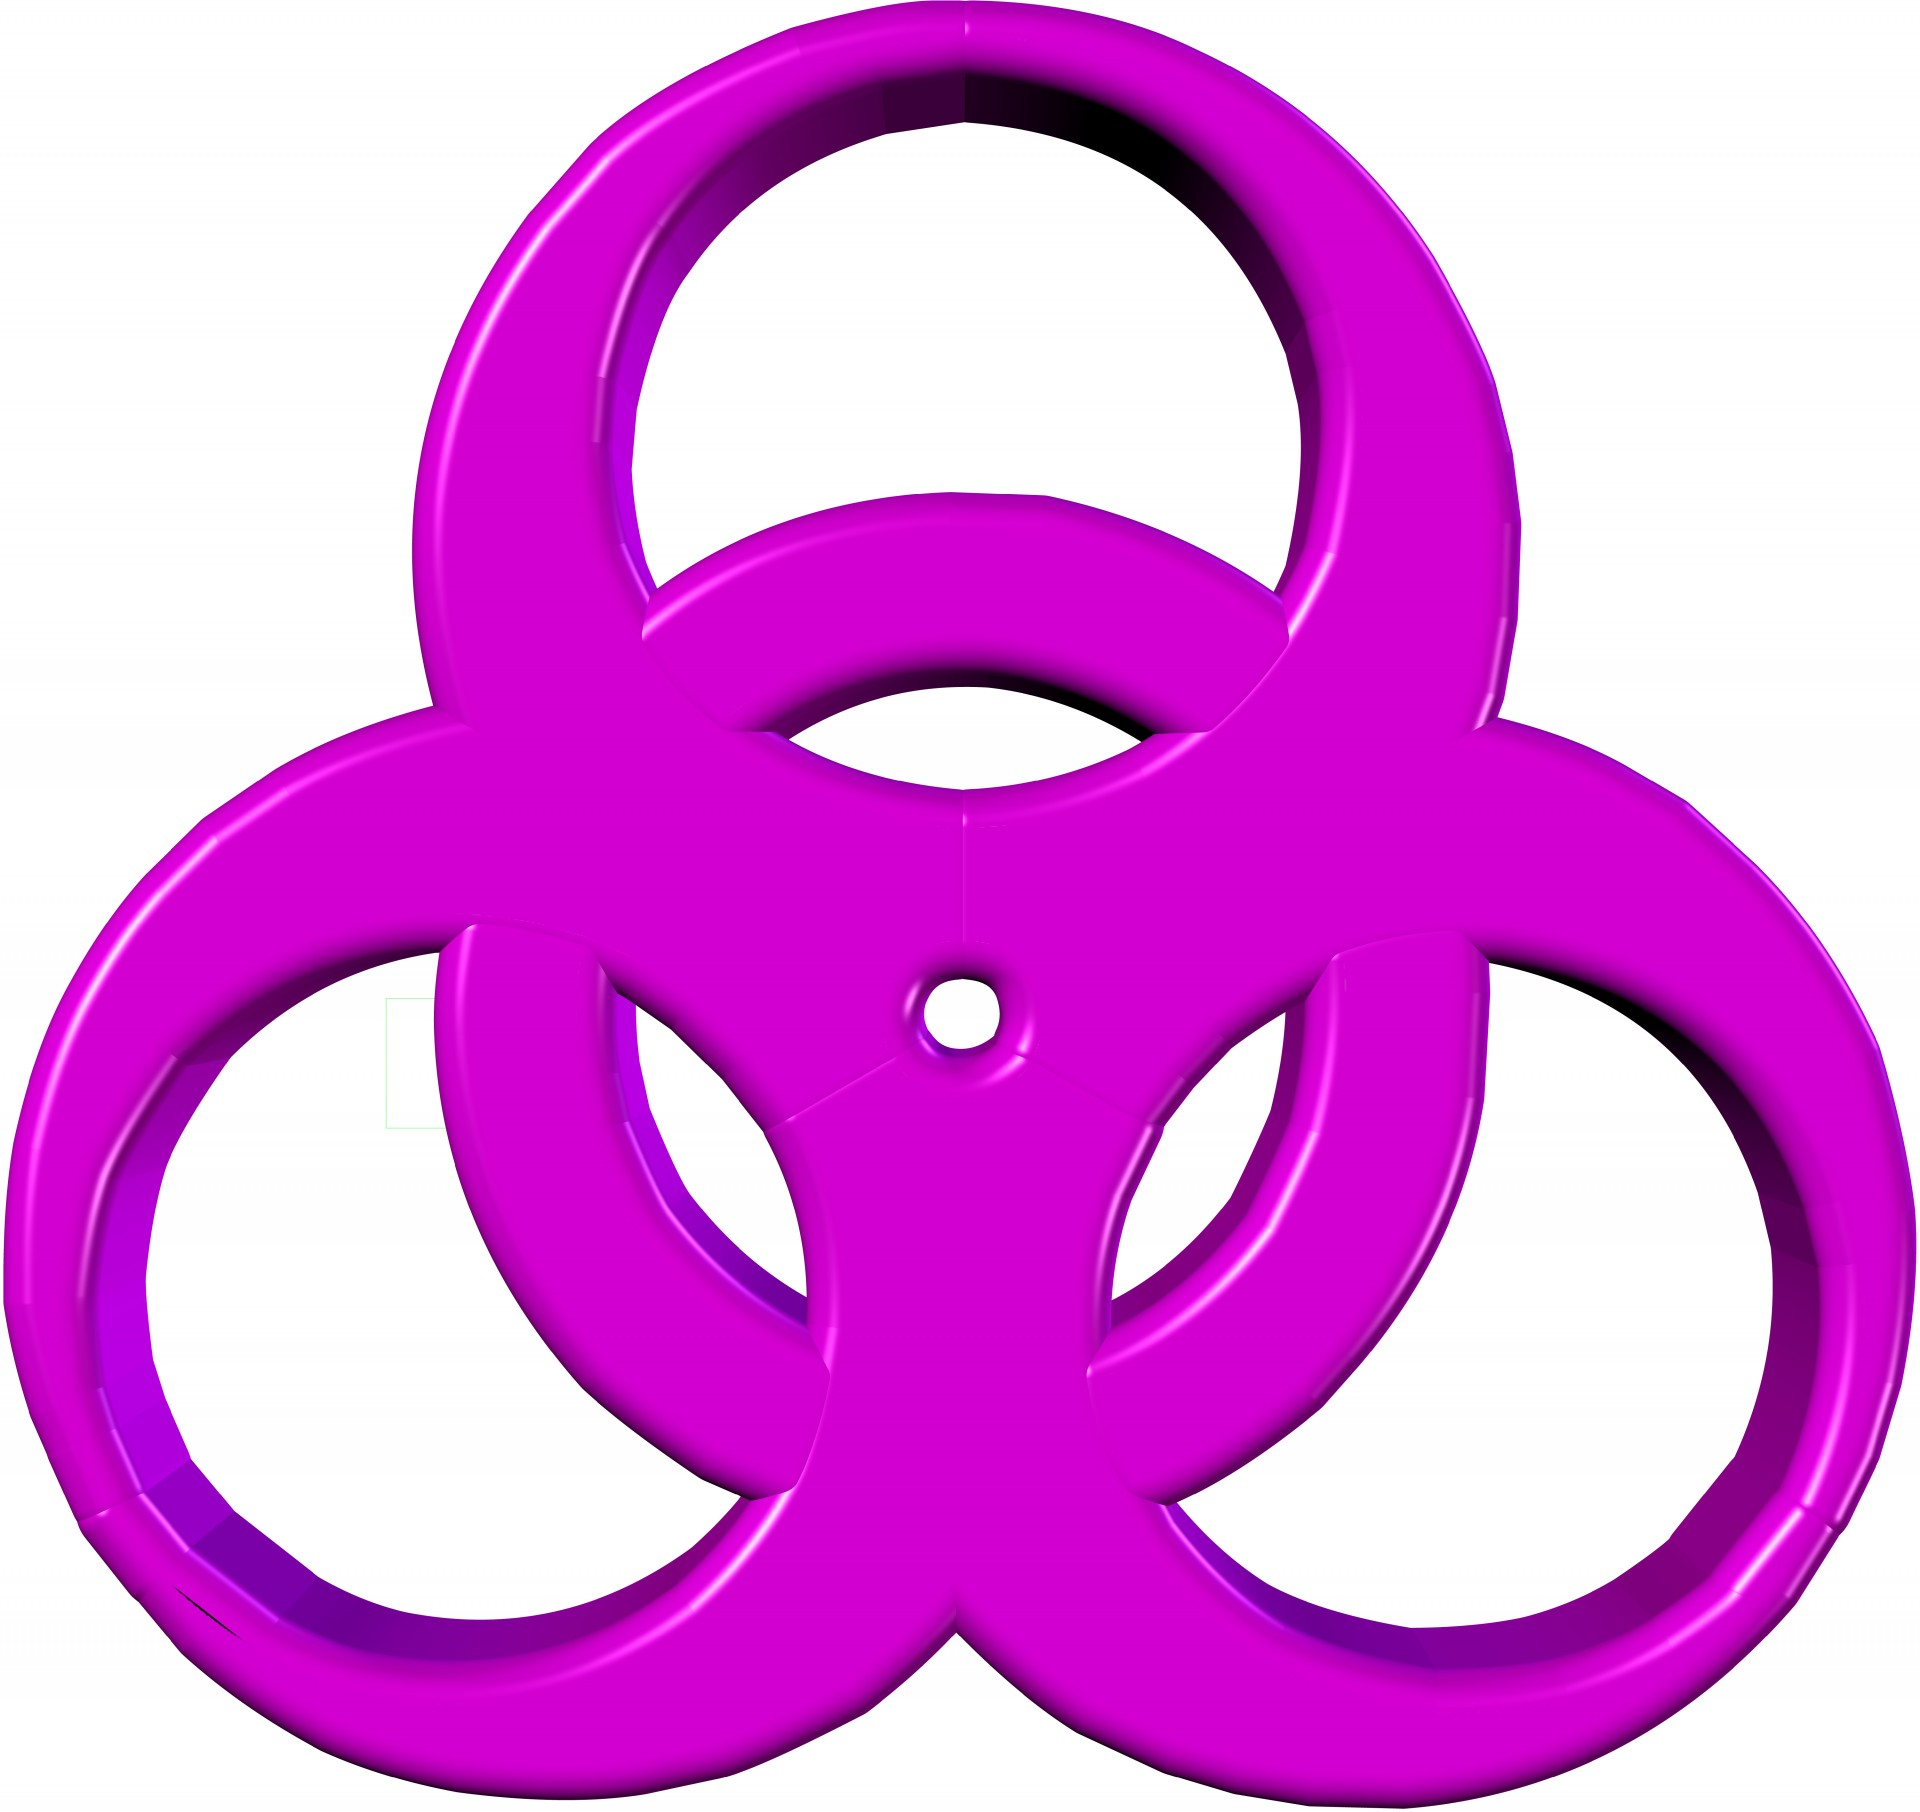 Biohazard symbol vector choice image symbol and sign ideas biohazard symbol clipart free download best biohazard symbol 1920x1812 biohazard symbol 2 free stock photo buycottarizona biocorpaavc Image collections